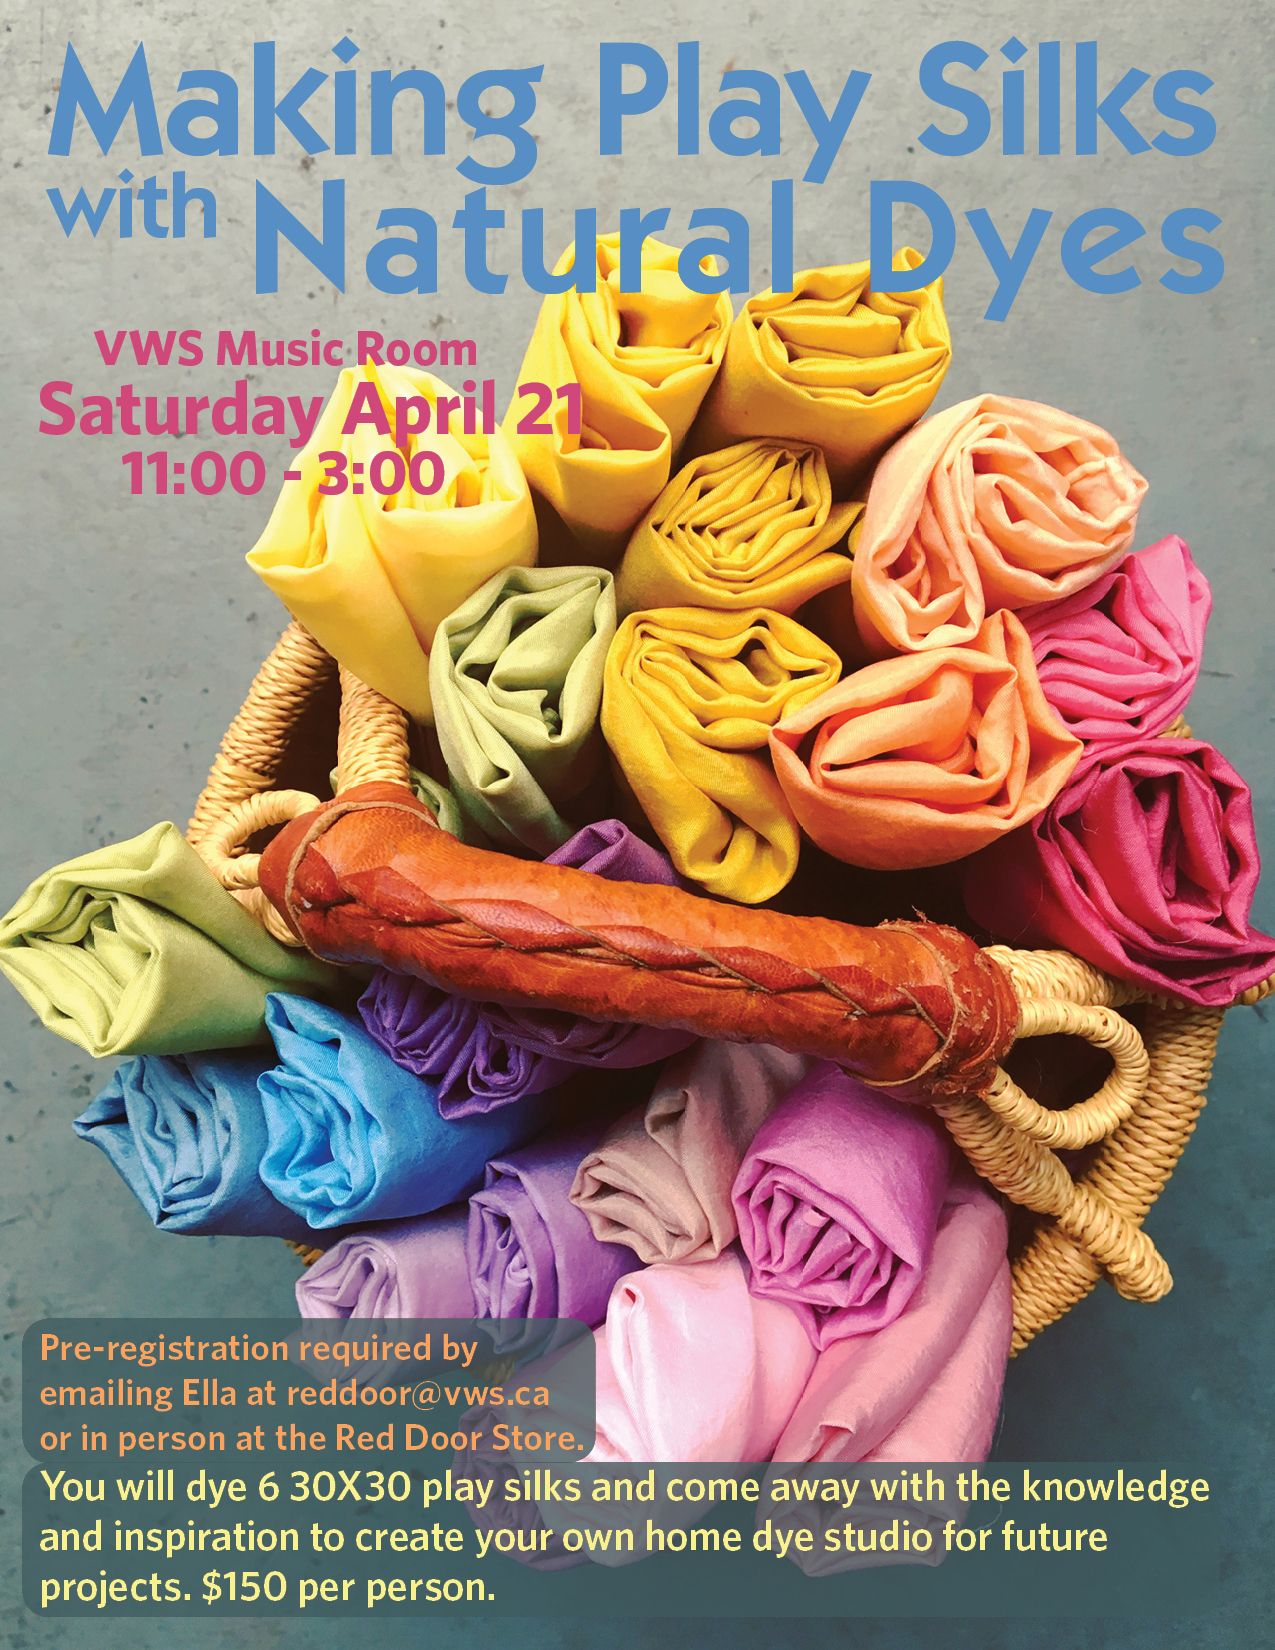 Making Play Silks with Natural Dyes